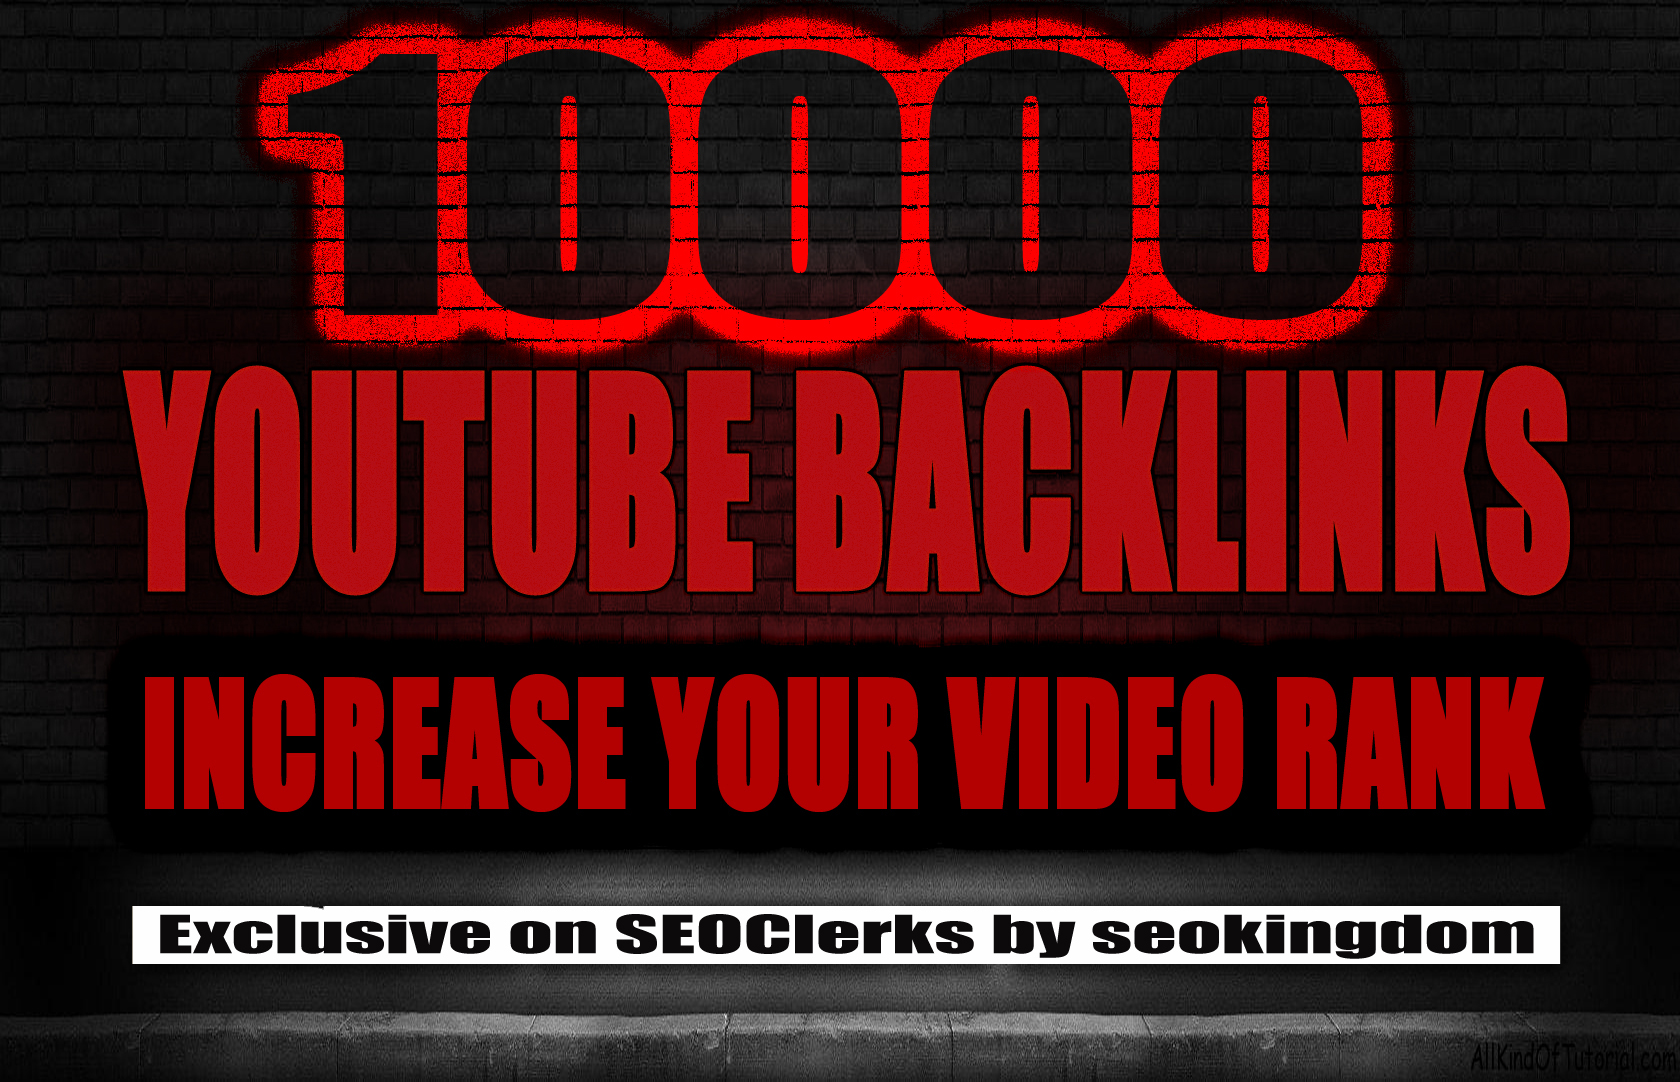 10000 Super Cool GSA YouTube Backlinks for increase your video Rank